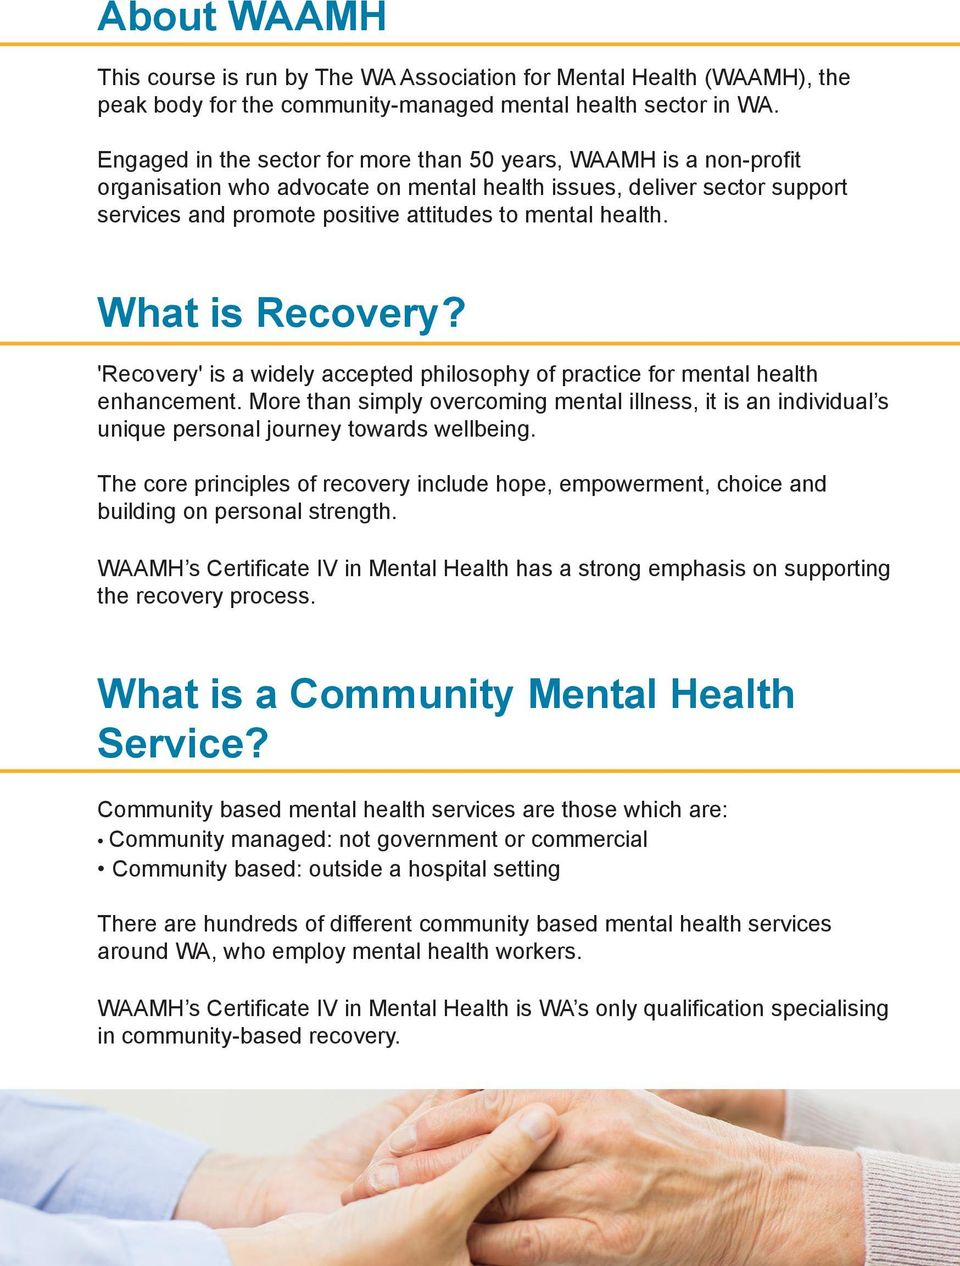 What is Recovery? 'Recovery' is a widely accepted philosophy of practice for mental health enhancement.